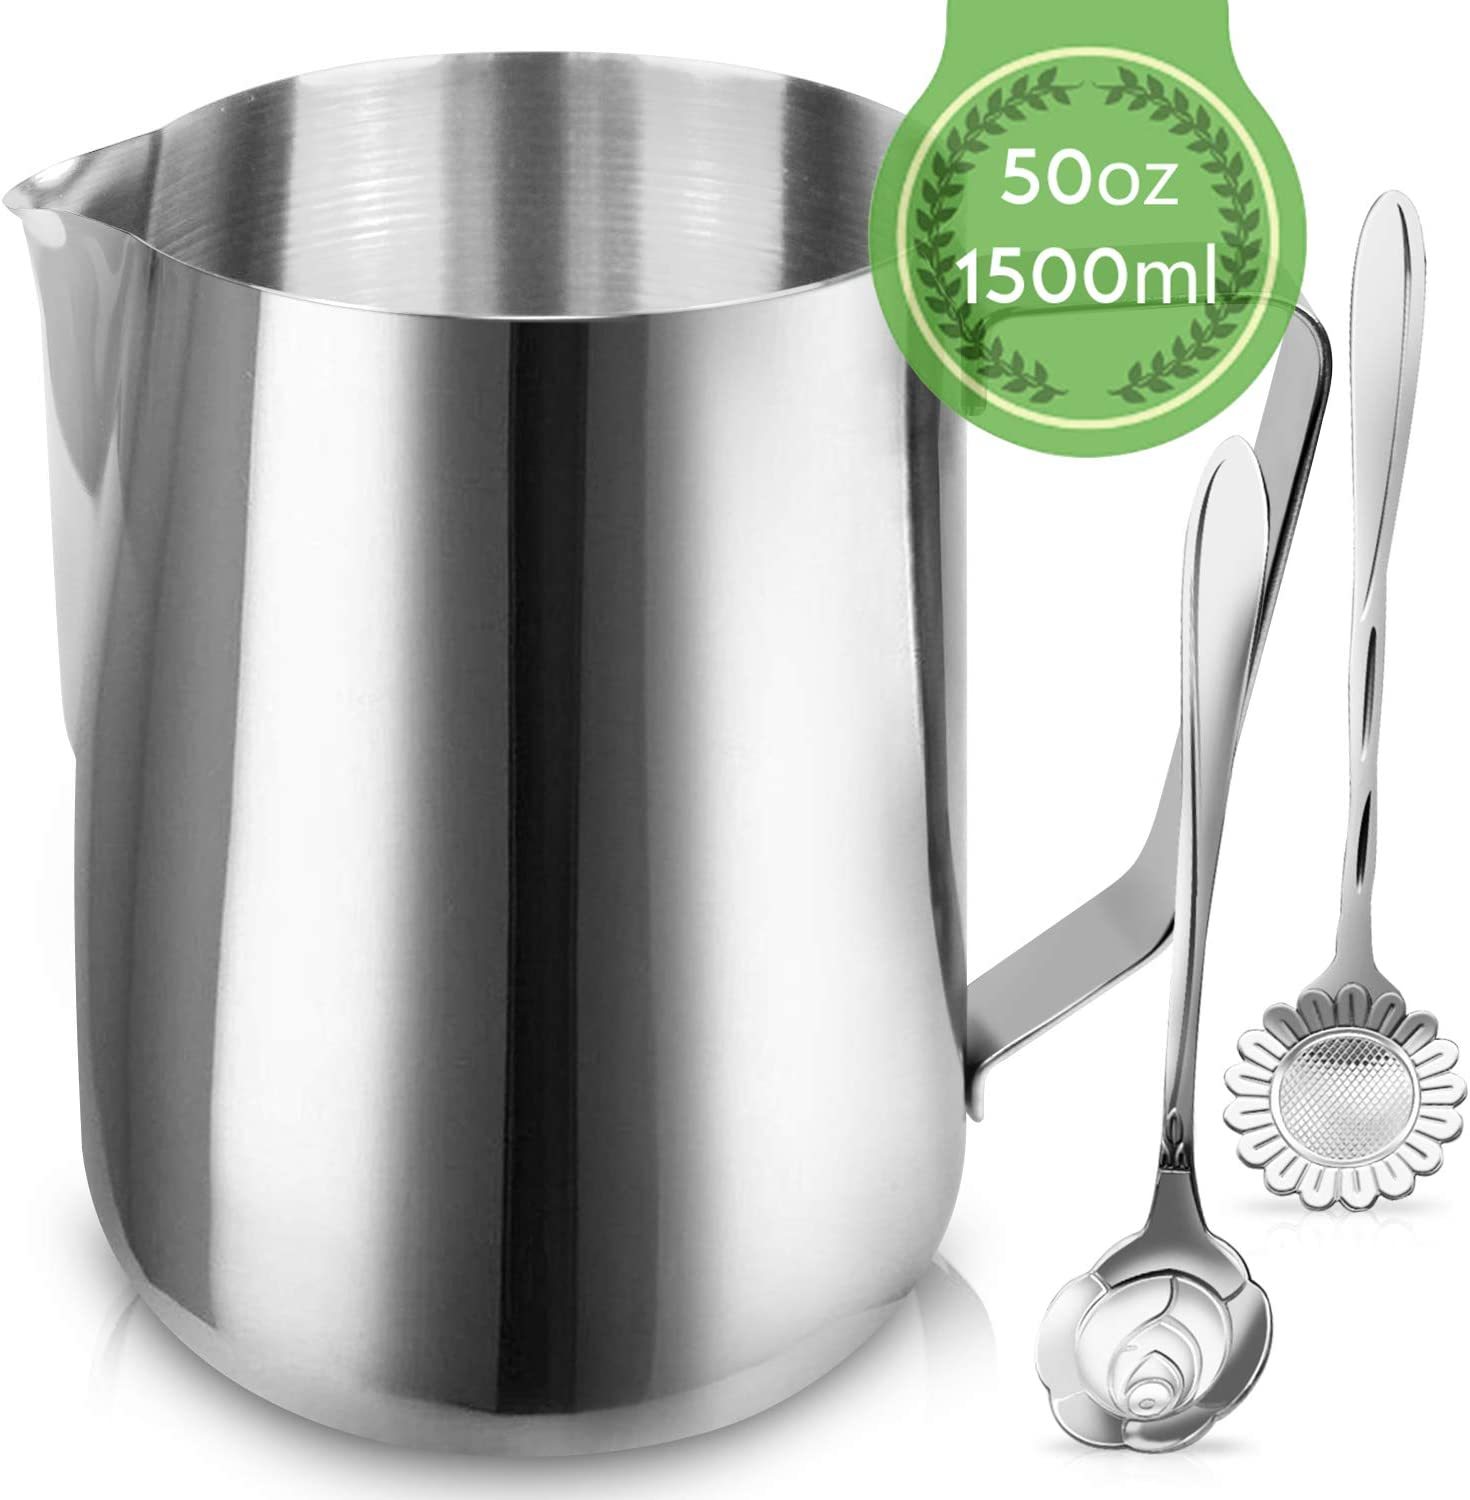 Milk Frothing Pitcher Jug - 50oz/1500ML Stainless Steel Coffee Tools Cup - Suitable for Espresso, Latte Art and Frothing Milk, Attached Dessert Coffee Spoons